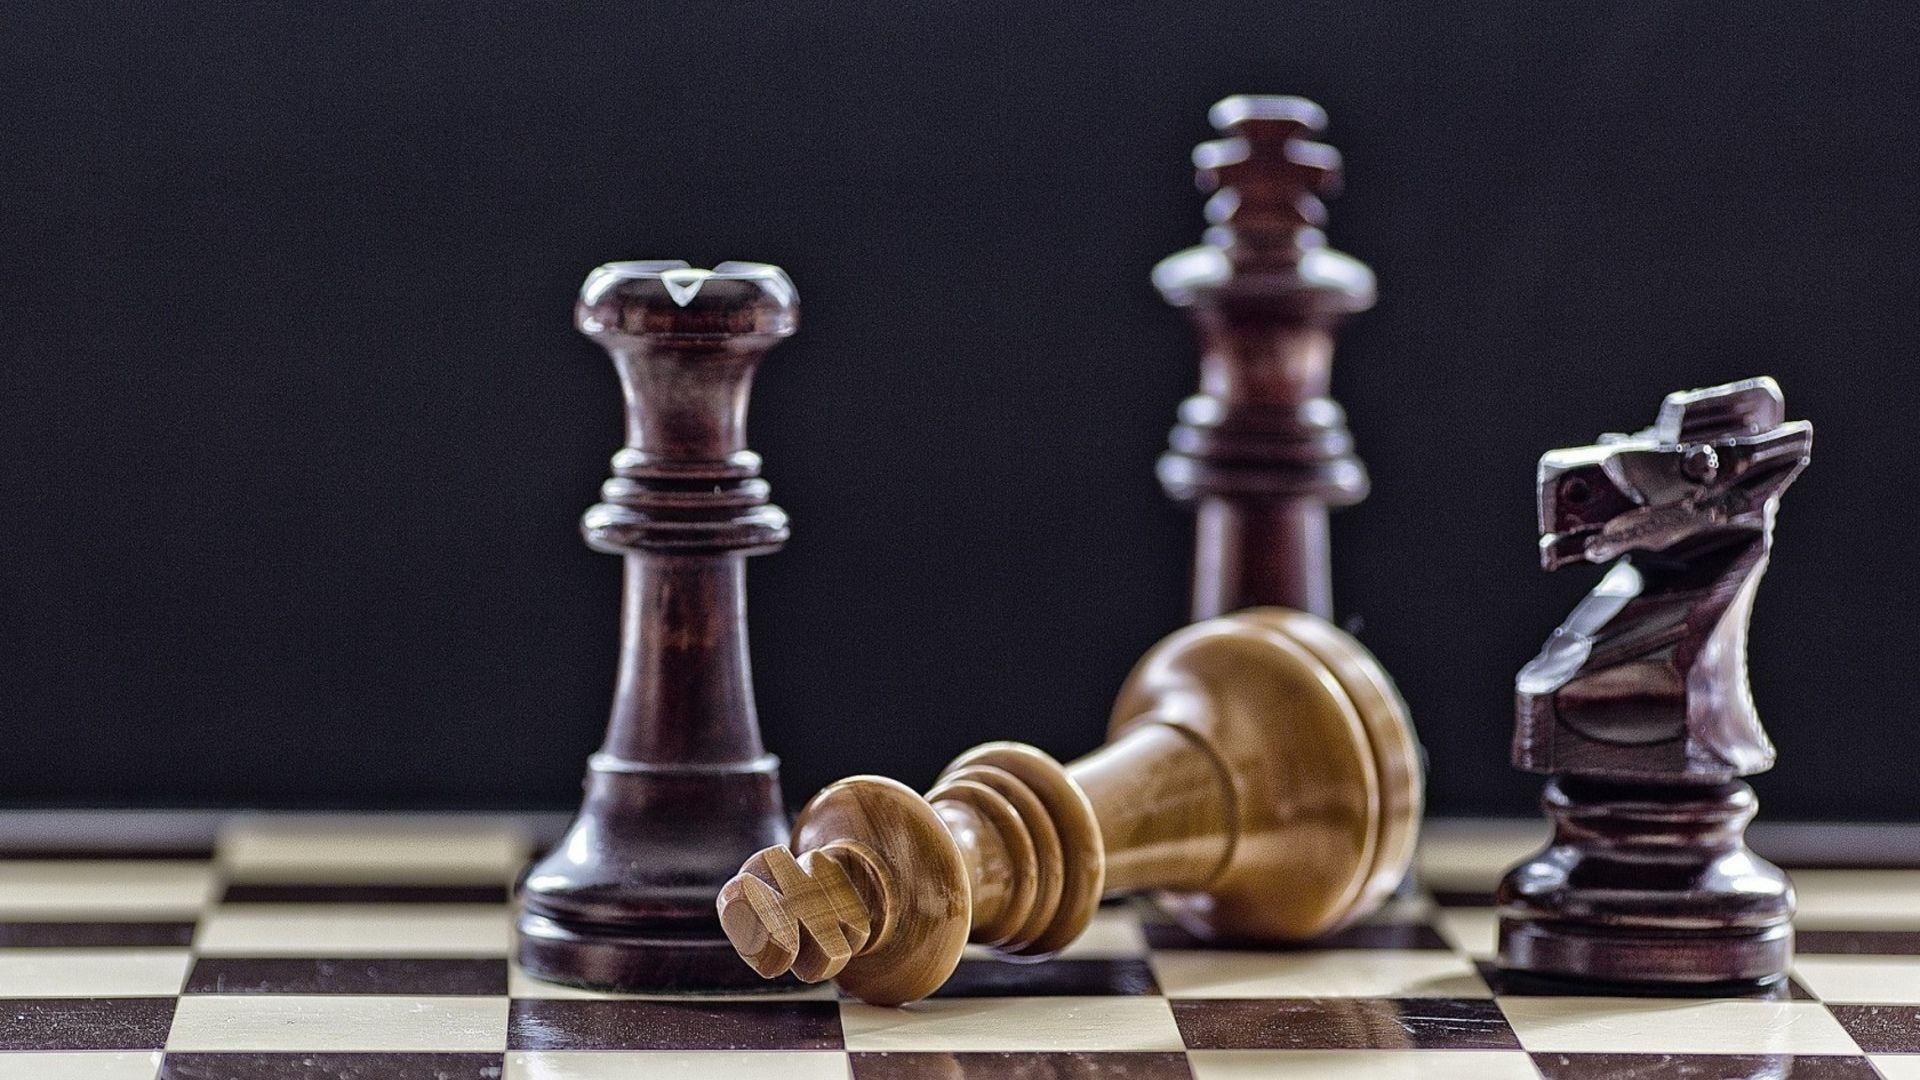 Image For > Chess Board Wallpapers